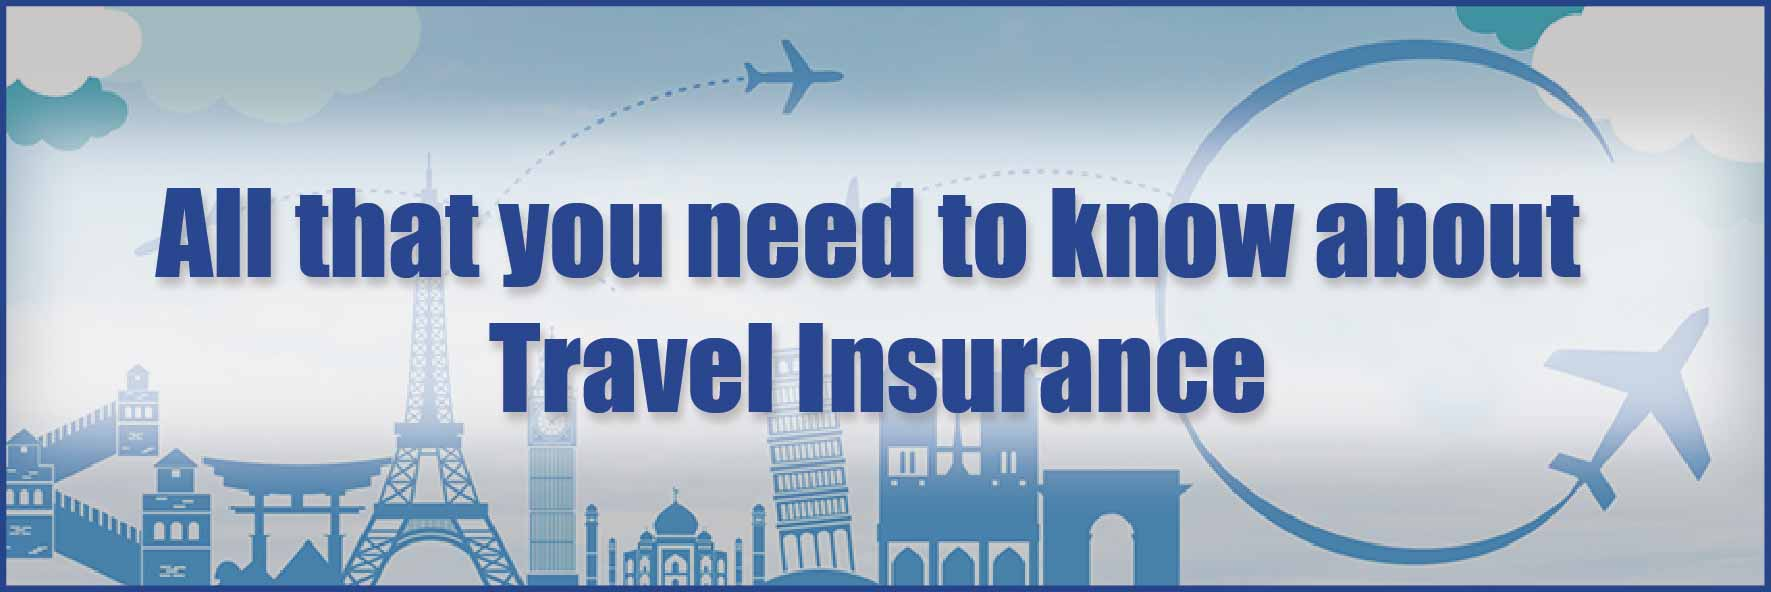 All that you need to know about Travel Insurance